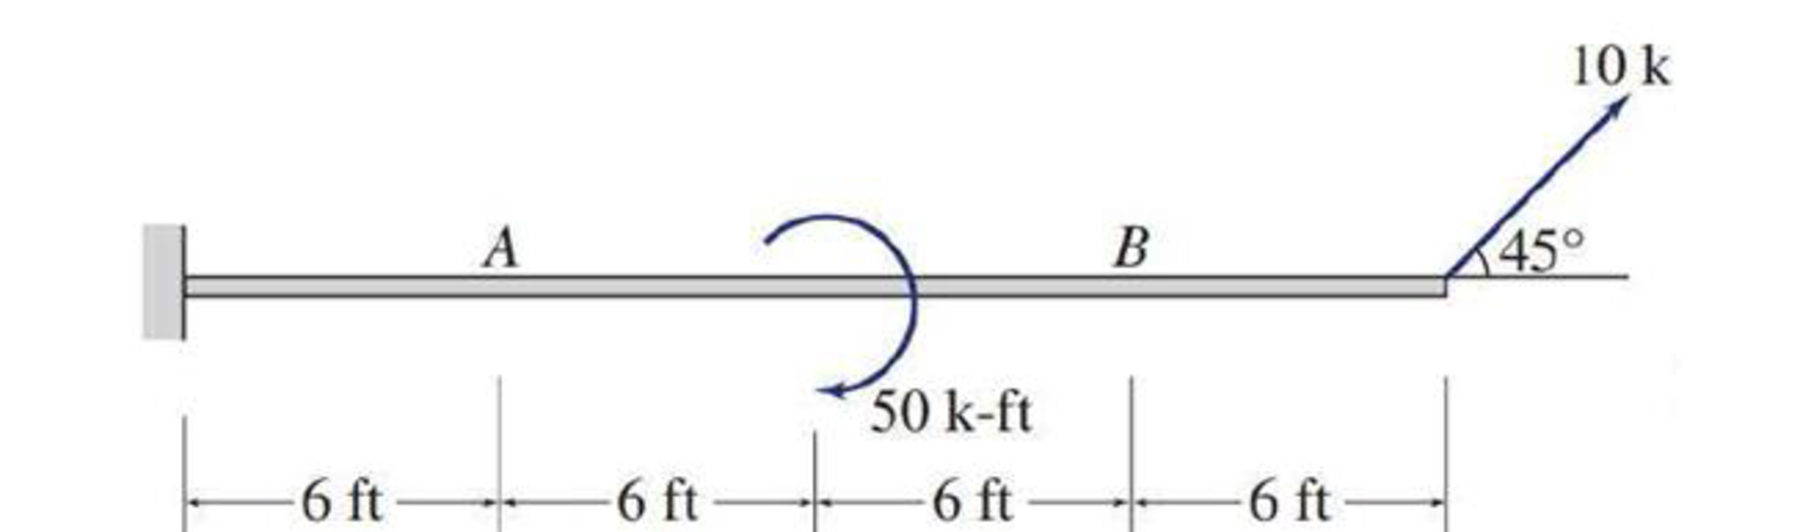 Chapter 5, Problem 4P, Determine the axial forces, shears, and bending moments at points A and B of the structure shown.